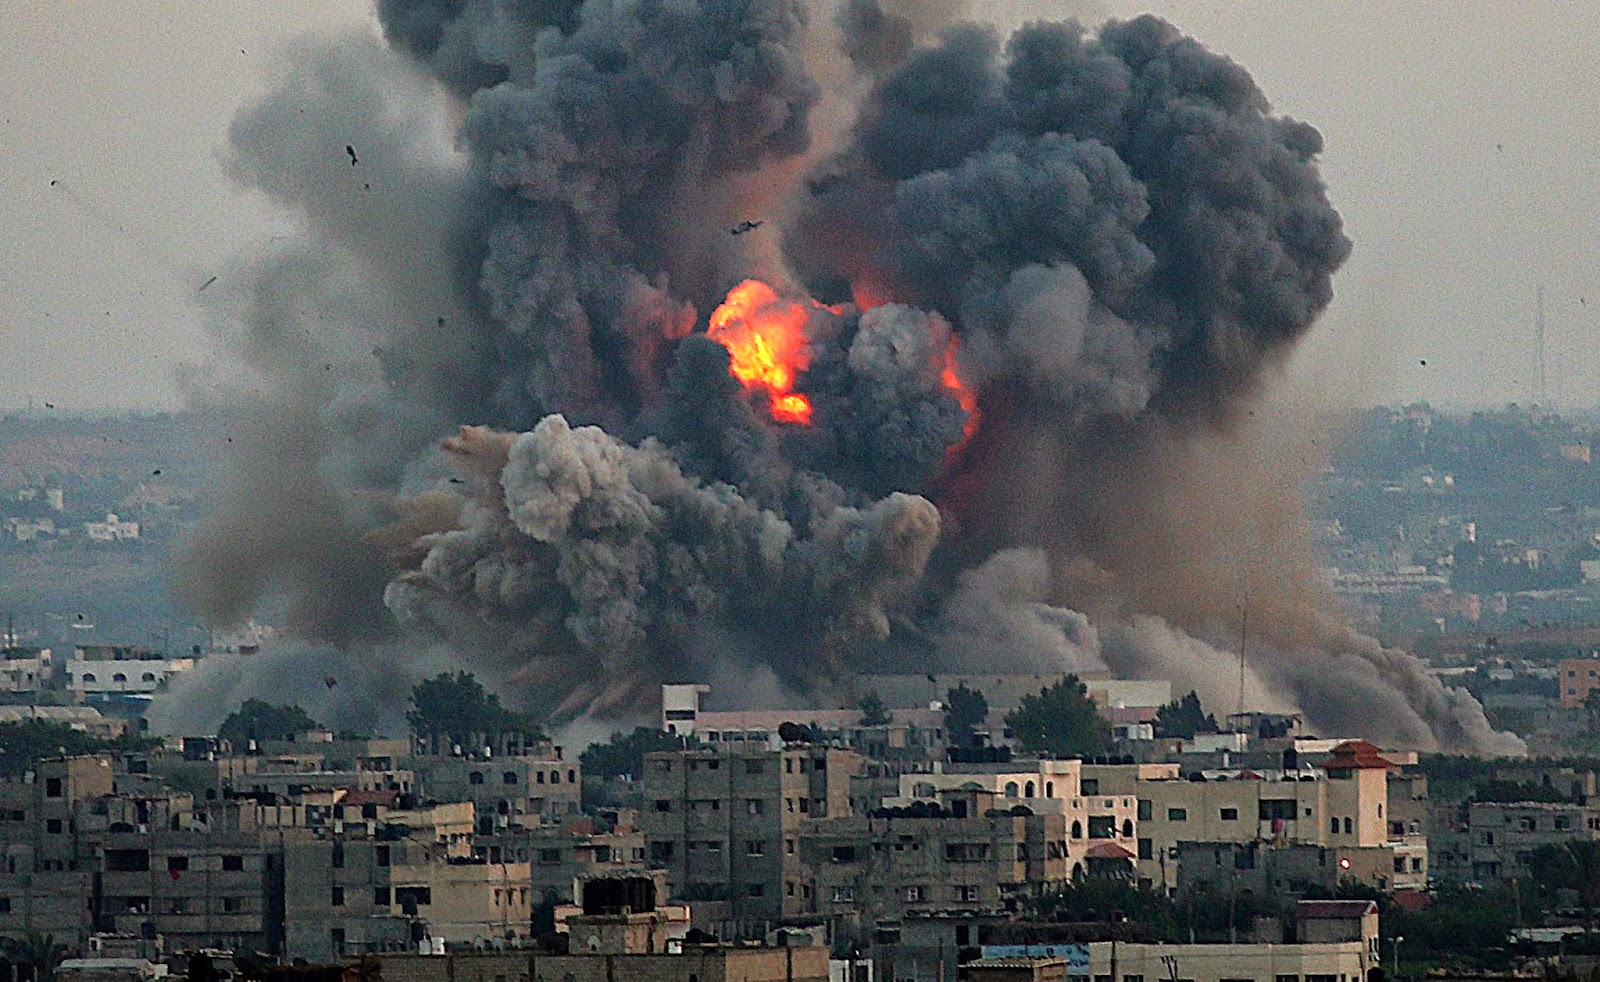 http://imgchili.net/show/53128/53128209_gaza_attacks.jpg